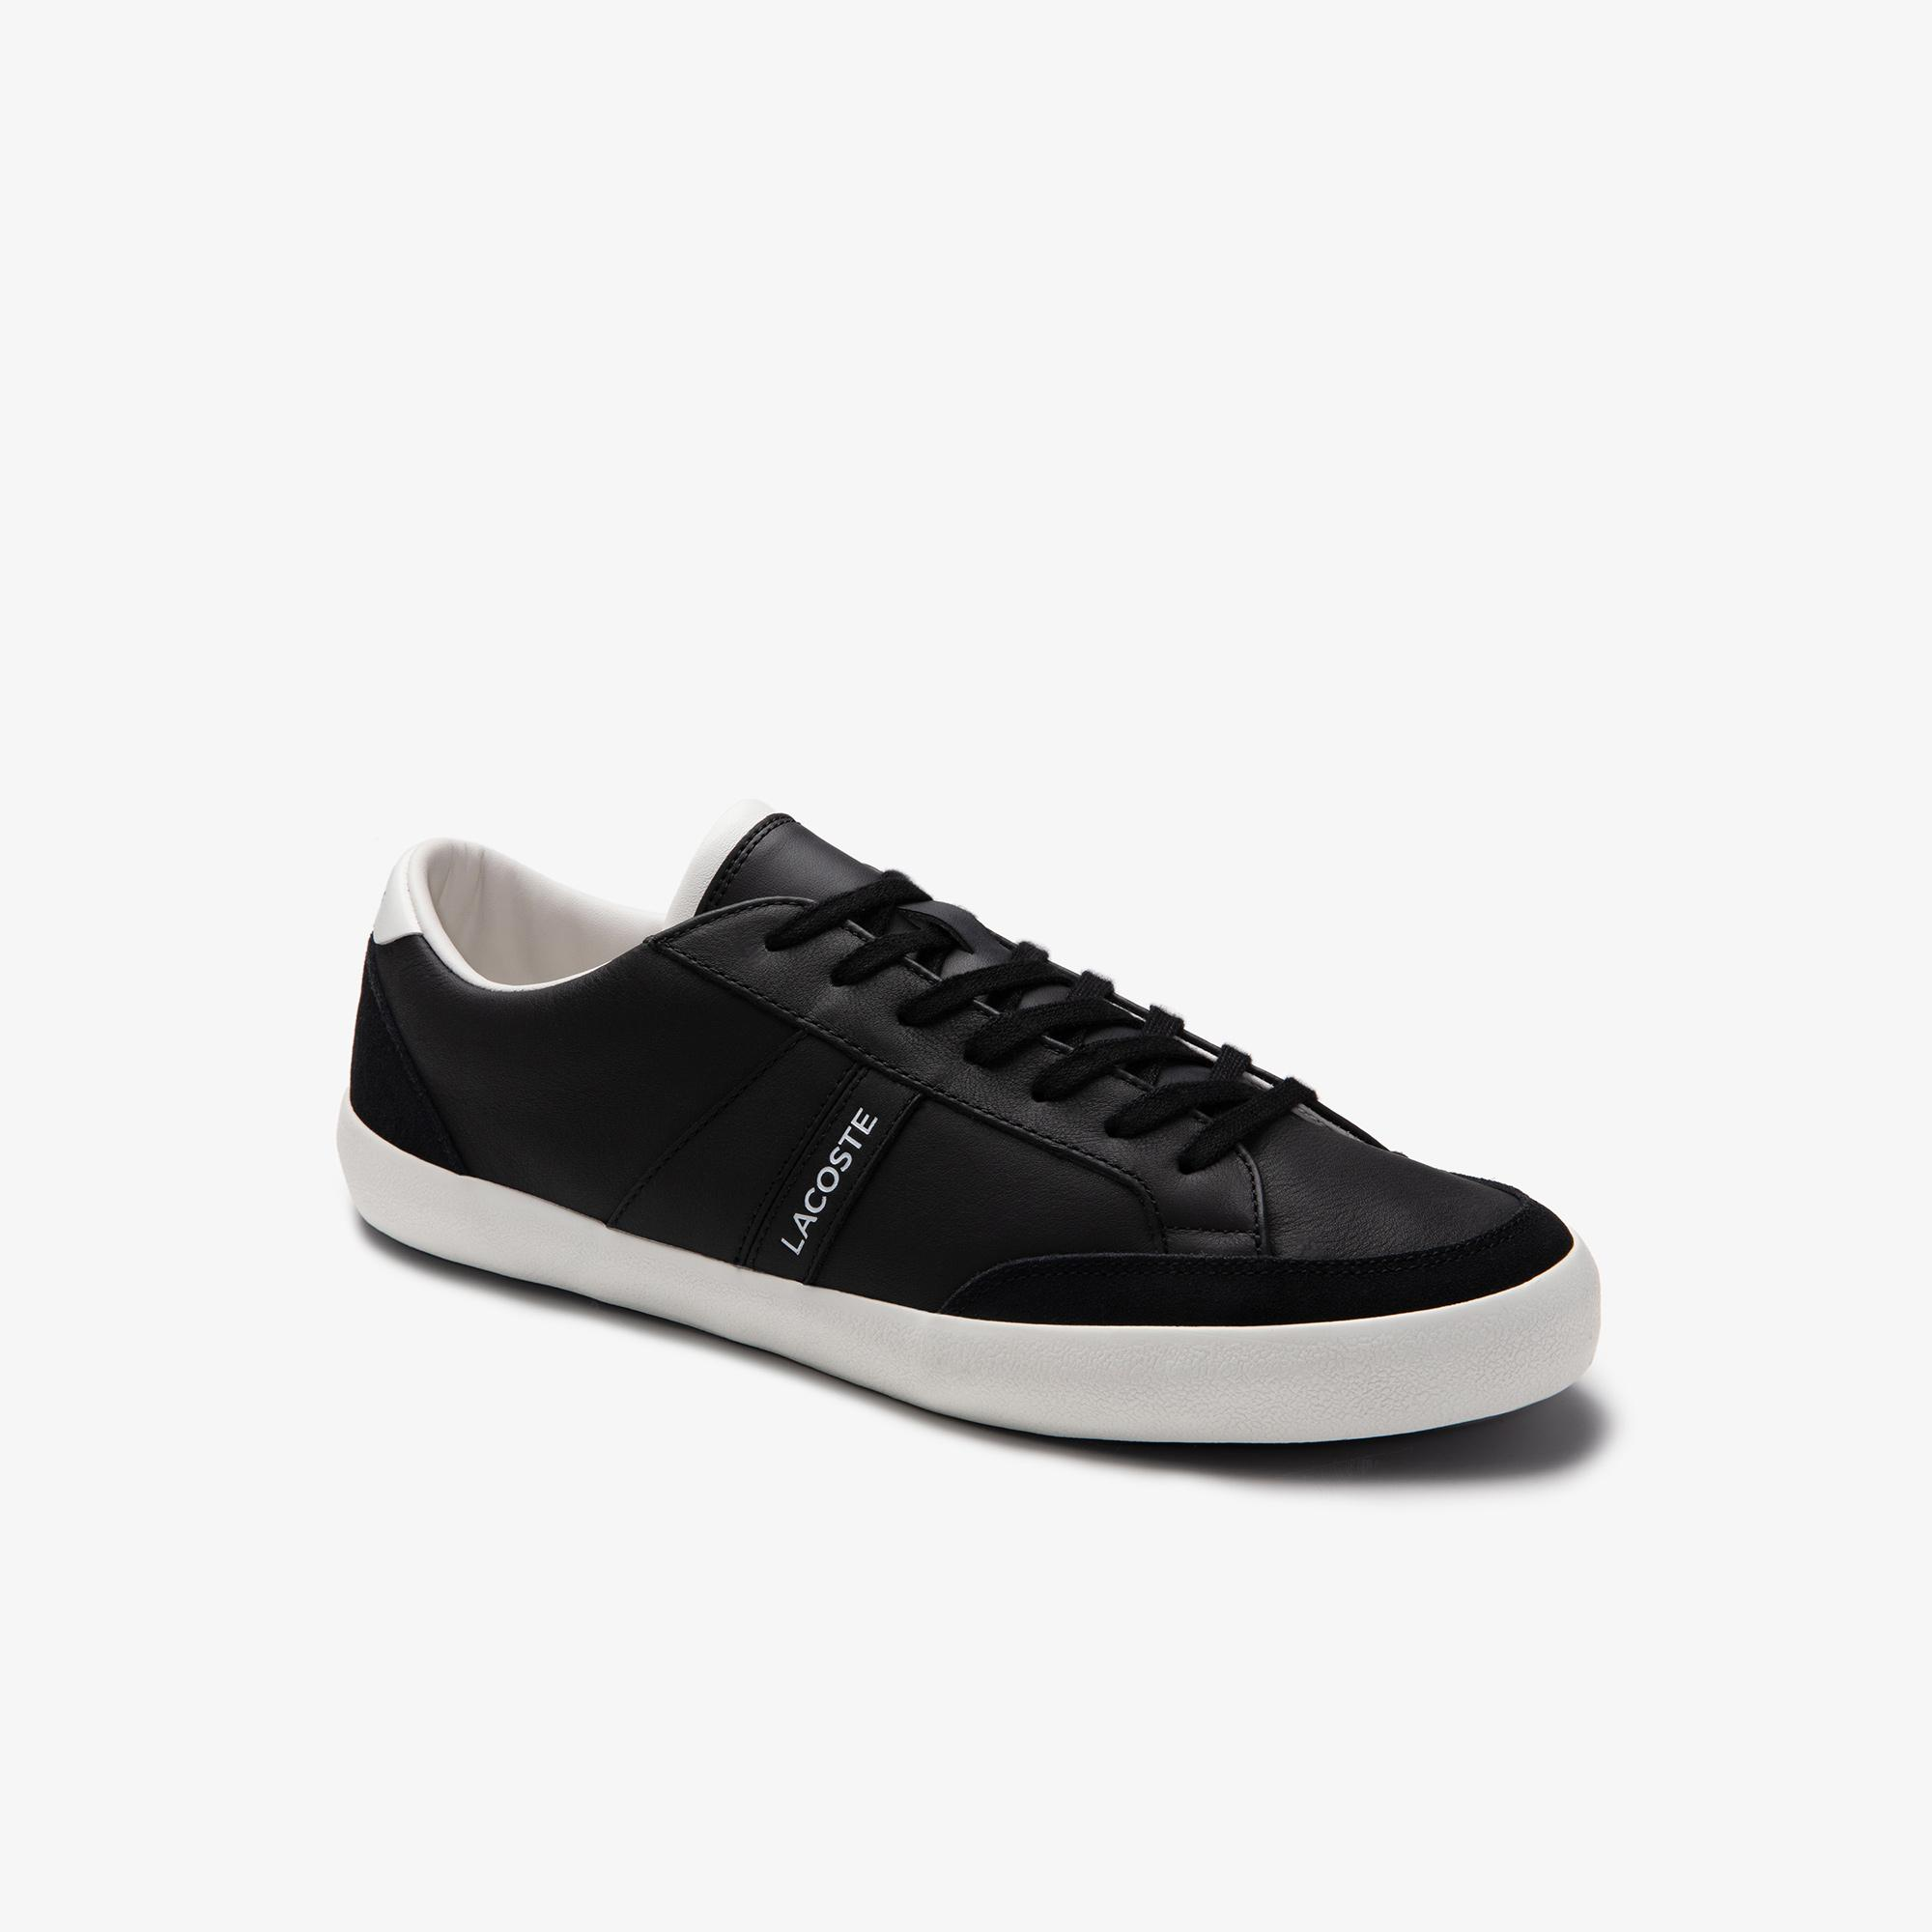 Lacoste Coupole 0120 1 Cma Męskie Buty Casual